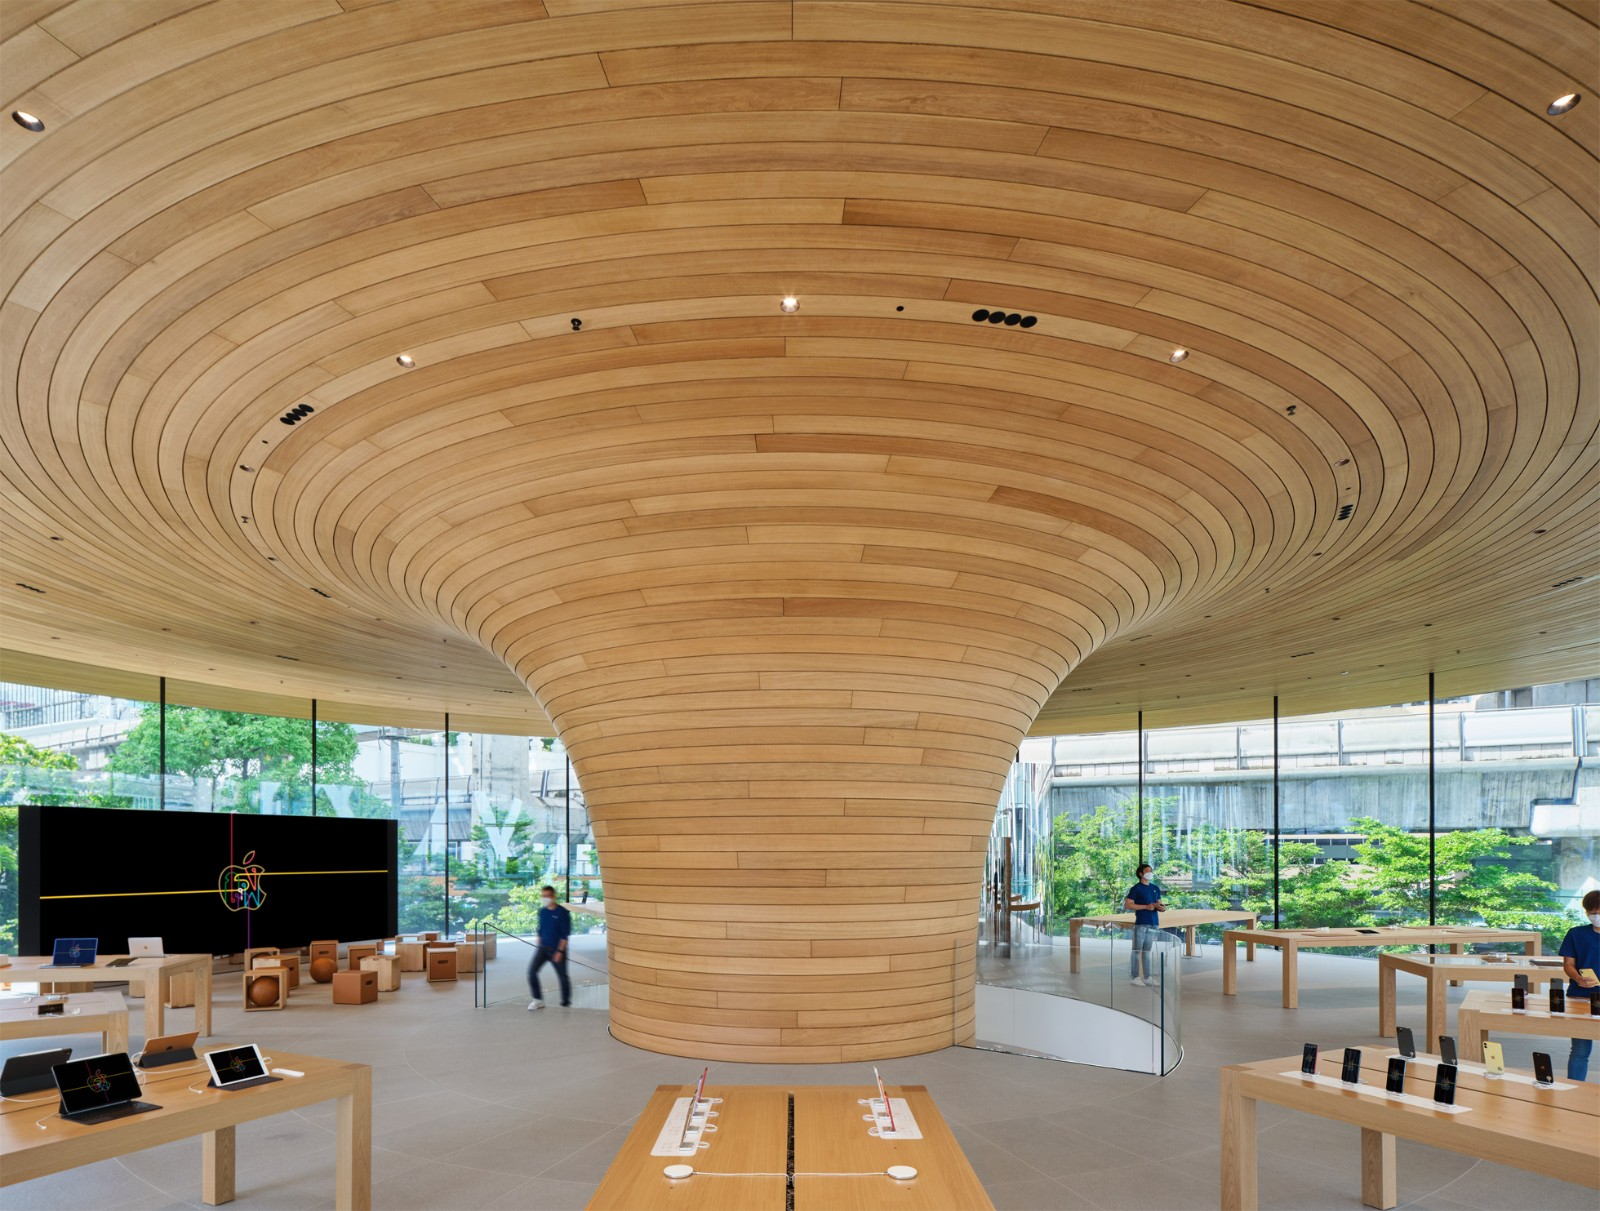 Apple Central World 內部空間。.jpg